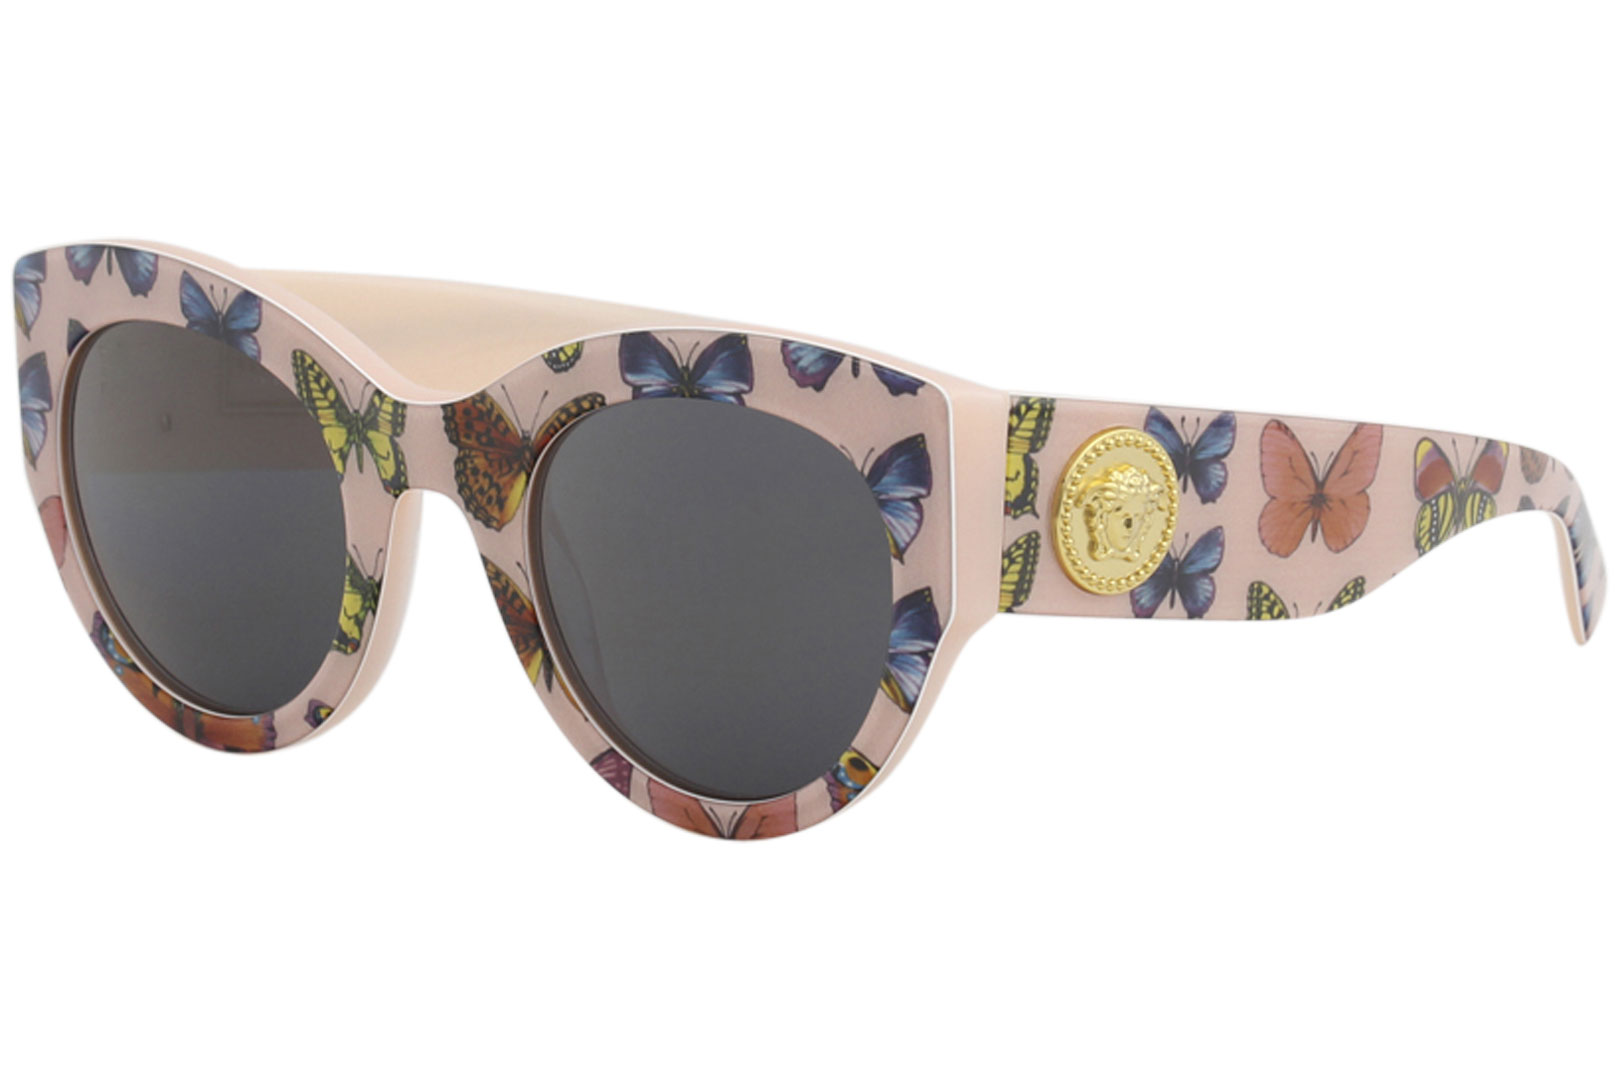 62ff00eecc0 Details about Versace Women s VE4353 VE 4353 5286 87 Butterfly Pink Square  Sunglasses 51mm